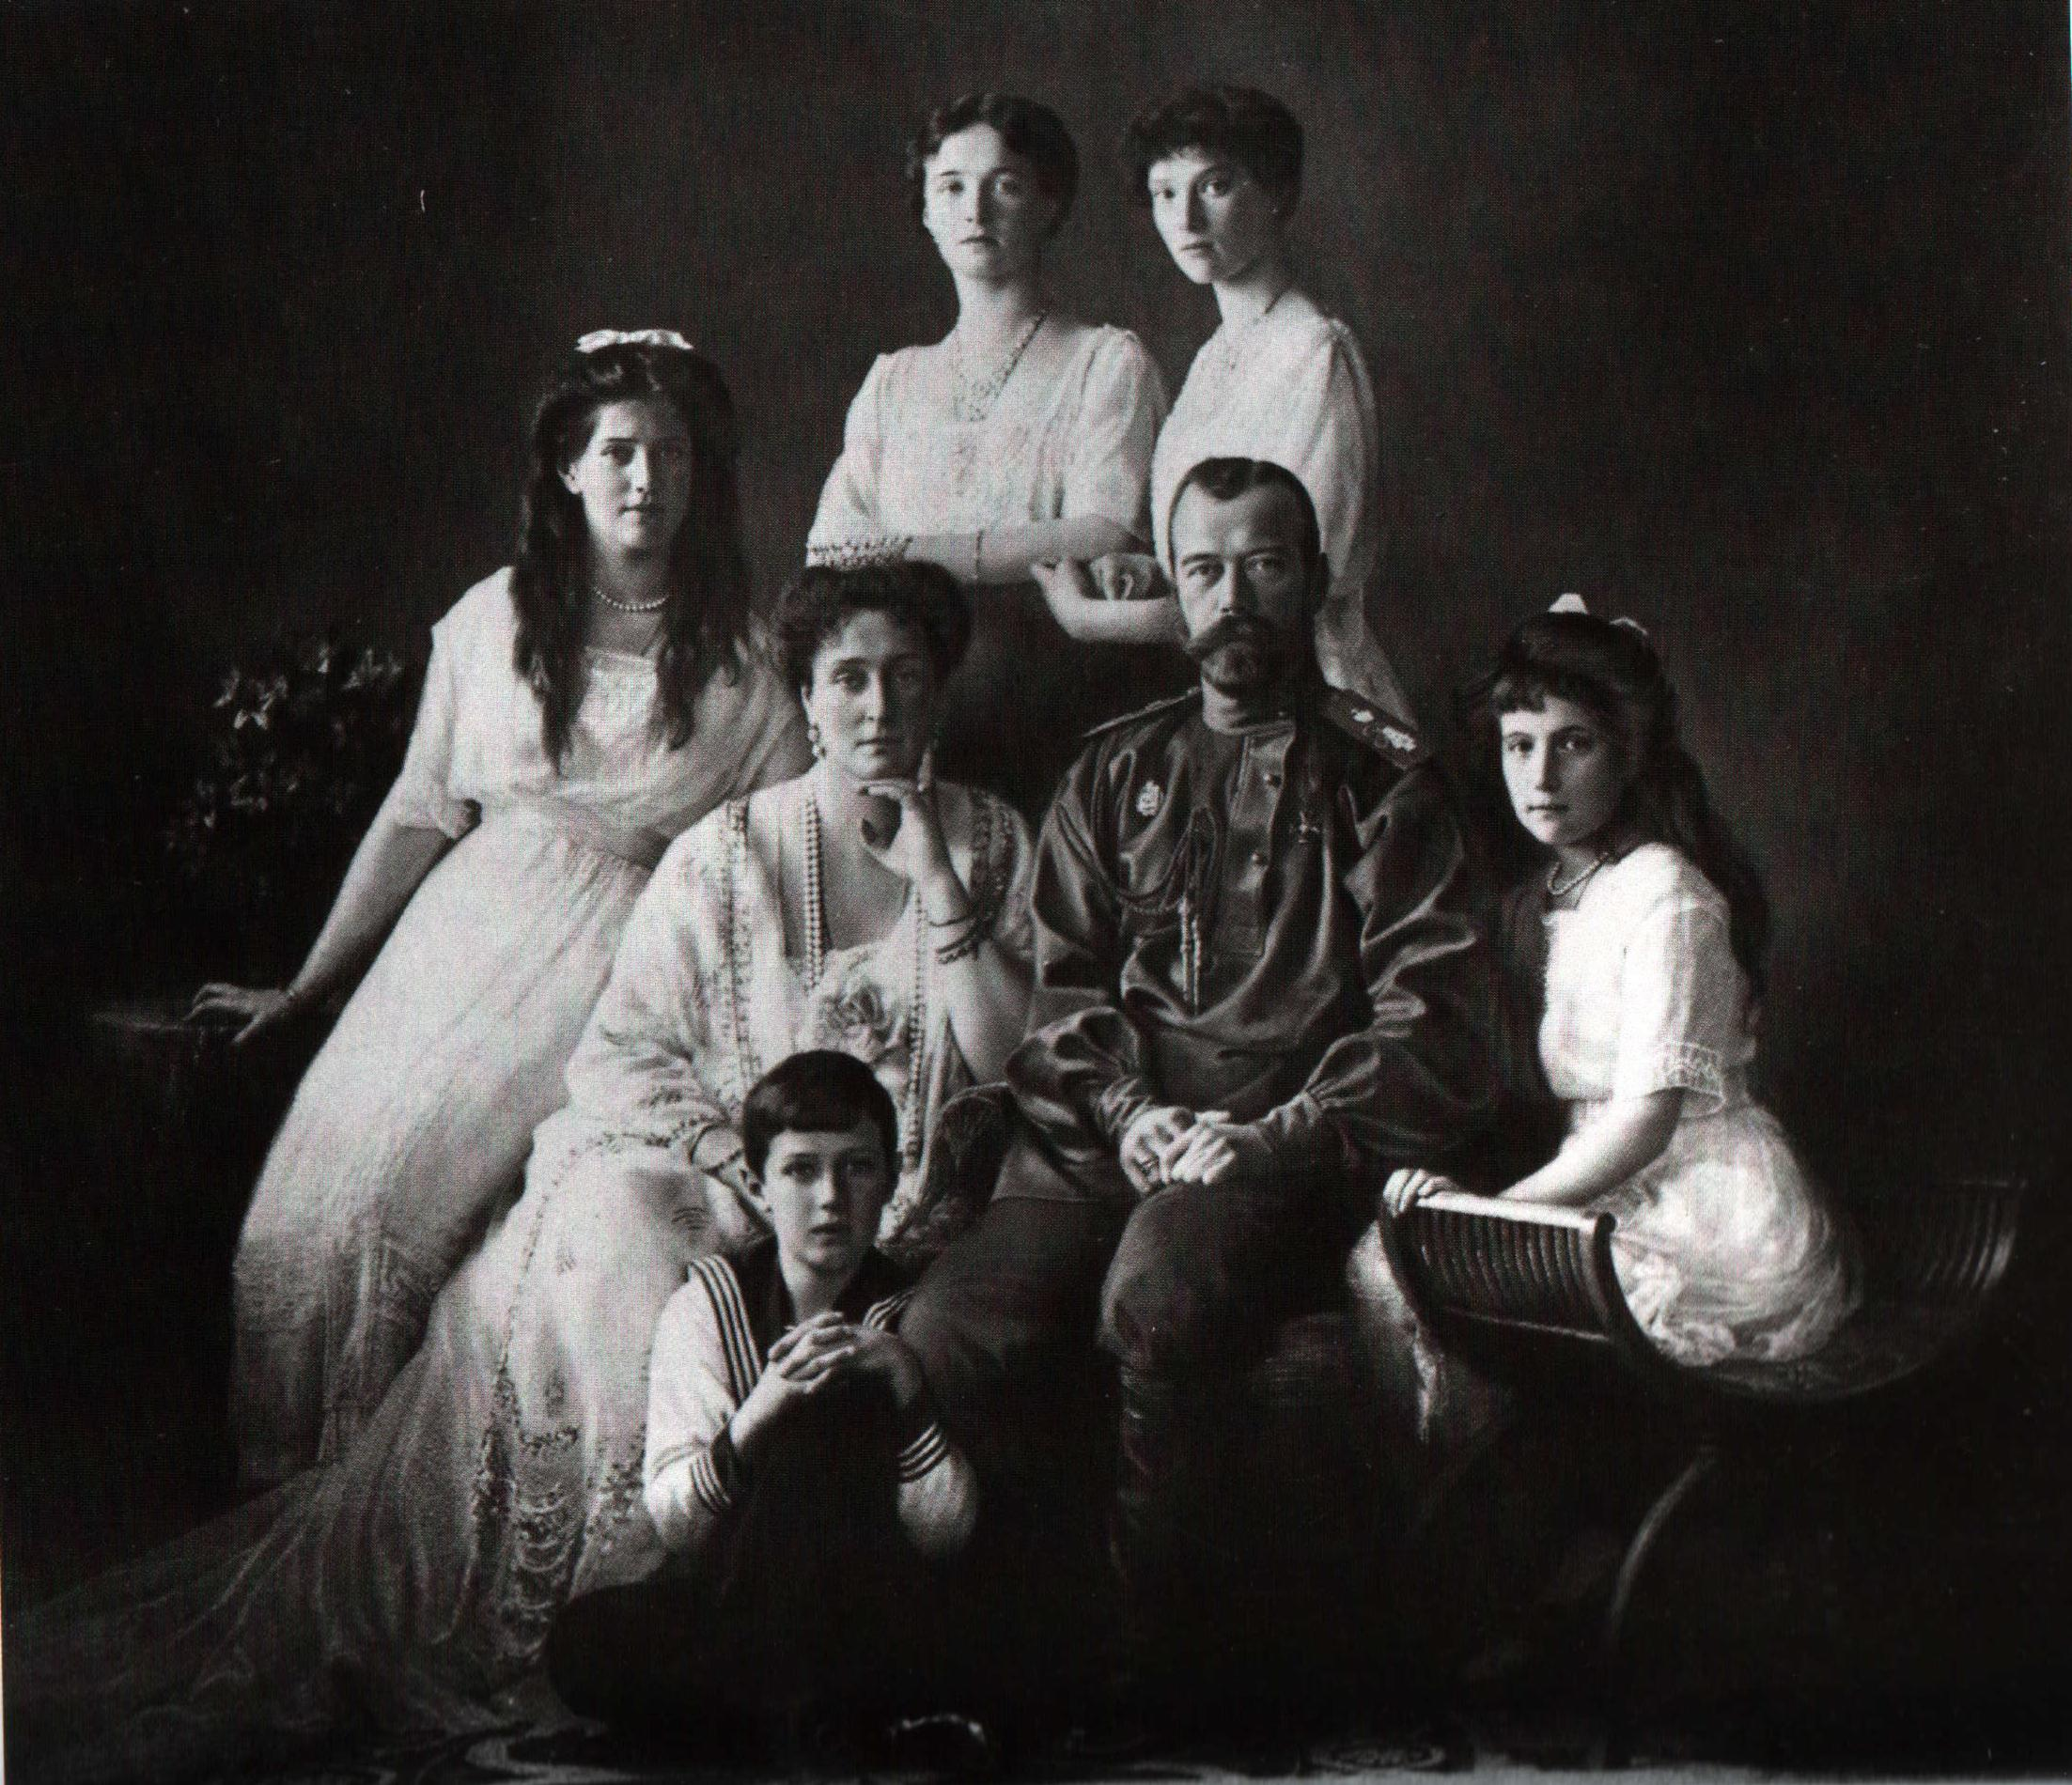 Tsar Nicholas II of Russia and his family, photographed in 1913 (Wikimedia Commons)